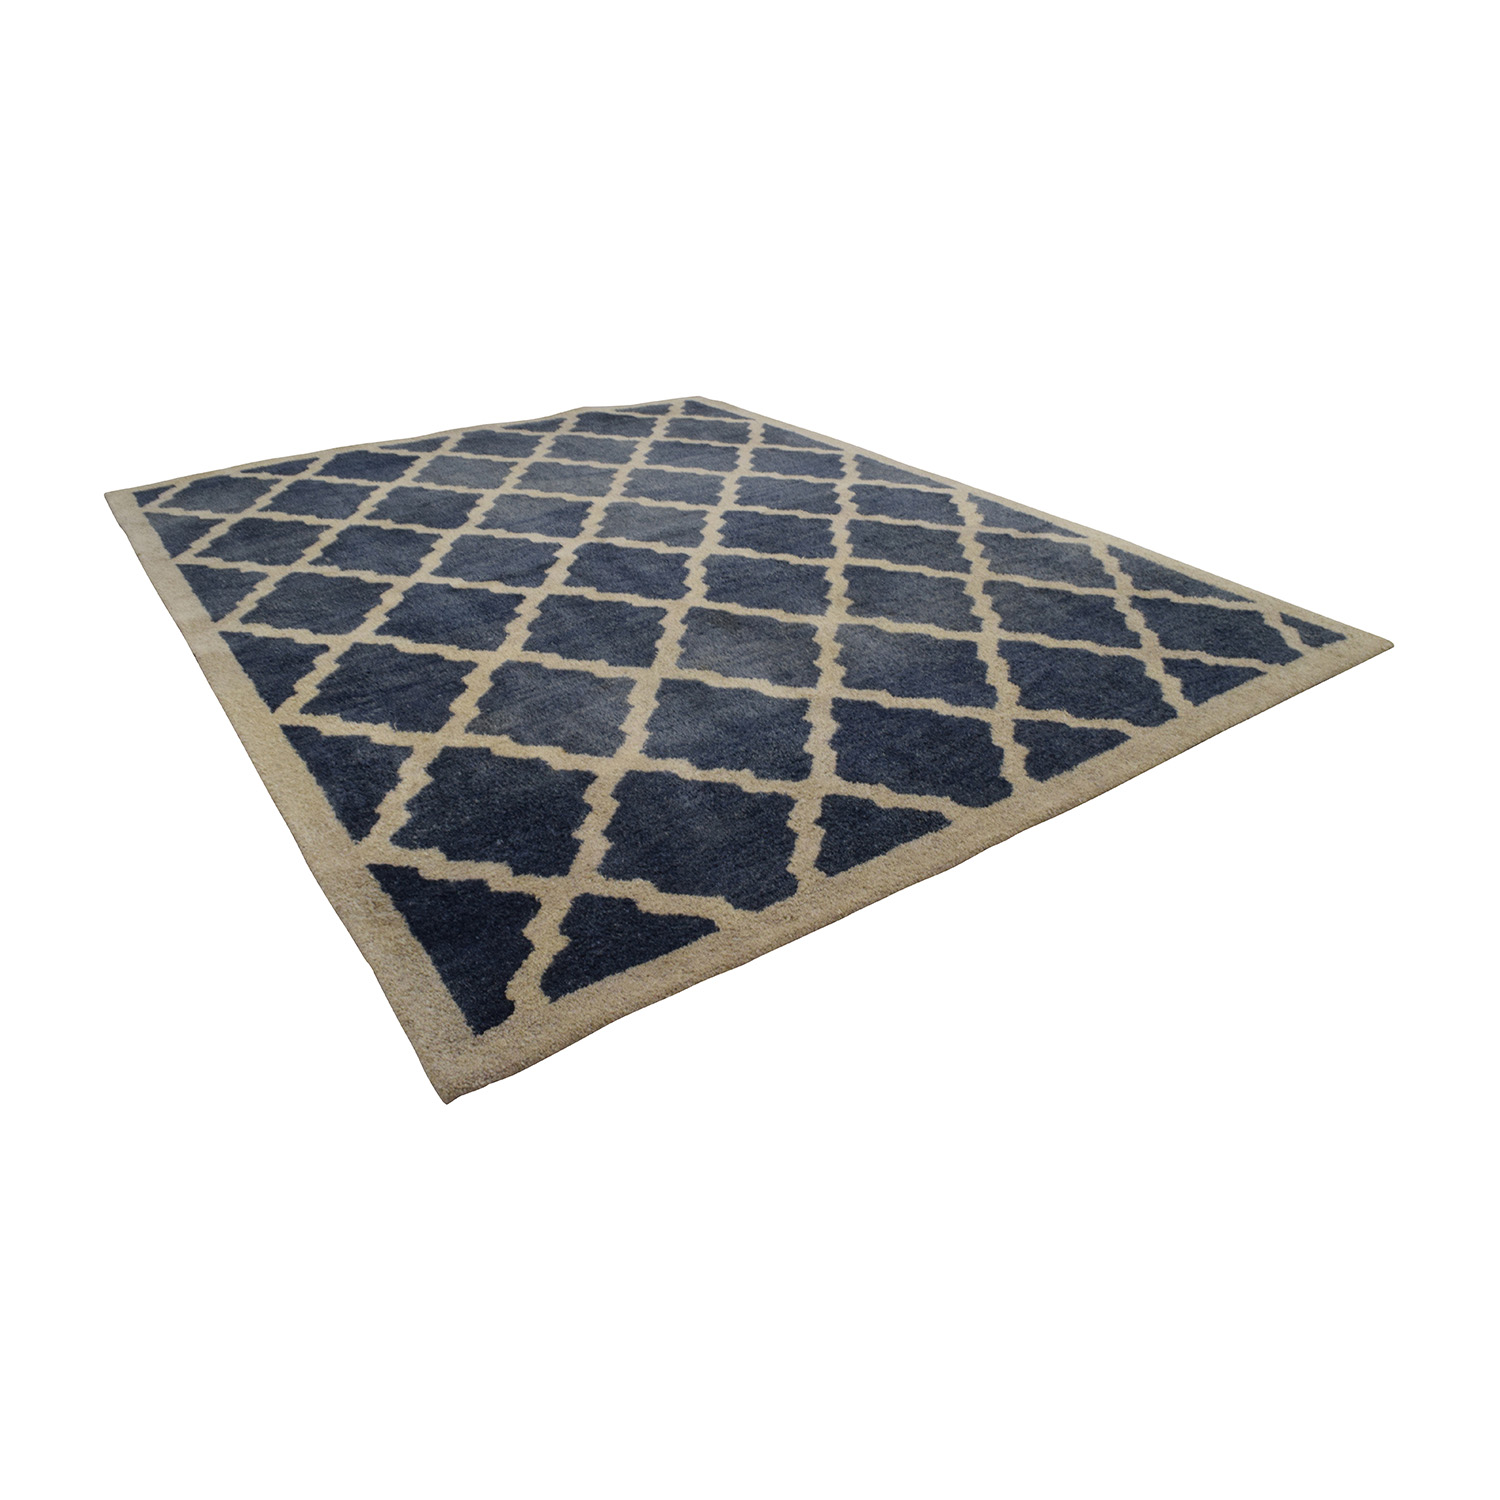 NuLOOM Navy and White Marrakech Trellis Rug sale